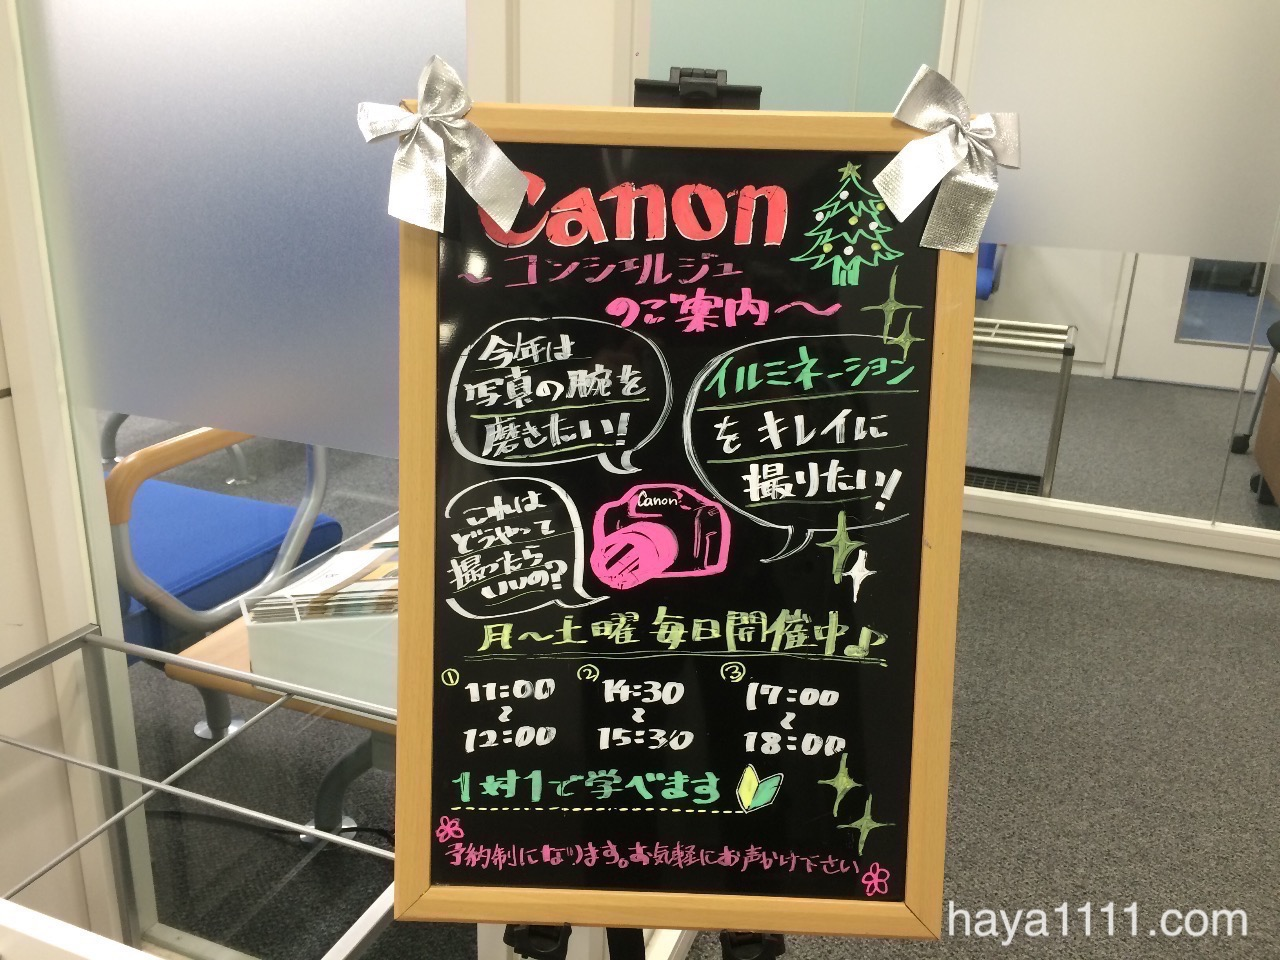 20151225 canon cleaning4